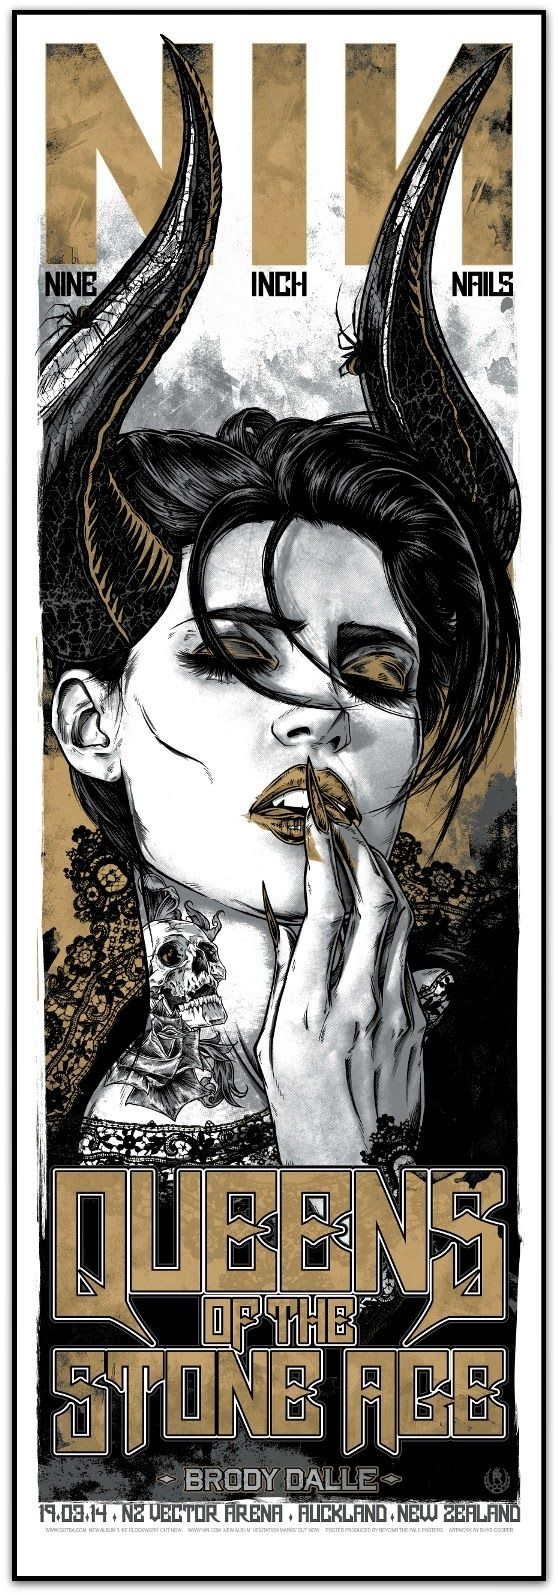 INSIDE THE ROCK POSTER FRAME BLOG: Nine Inch Nails & Queens of the Stone Age Rhys Coo...